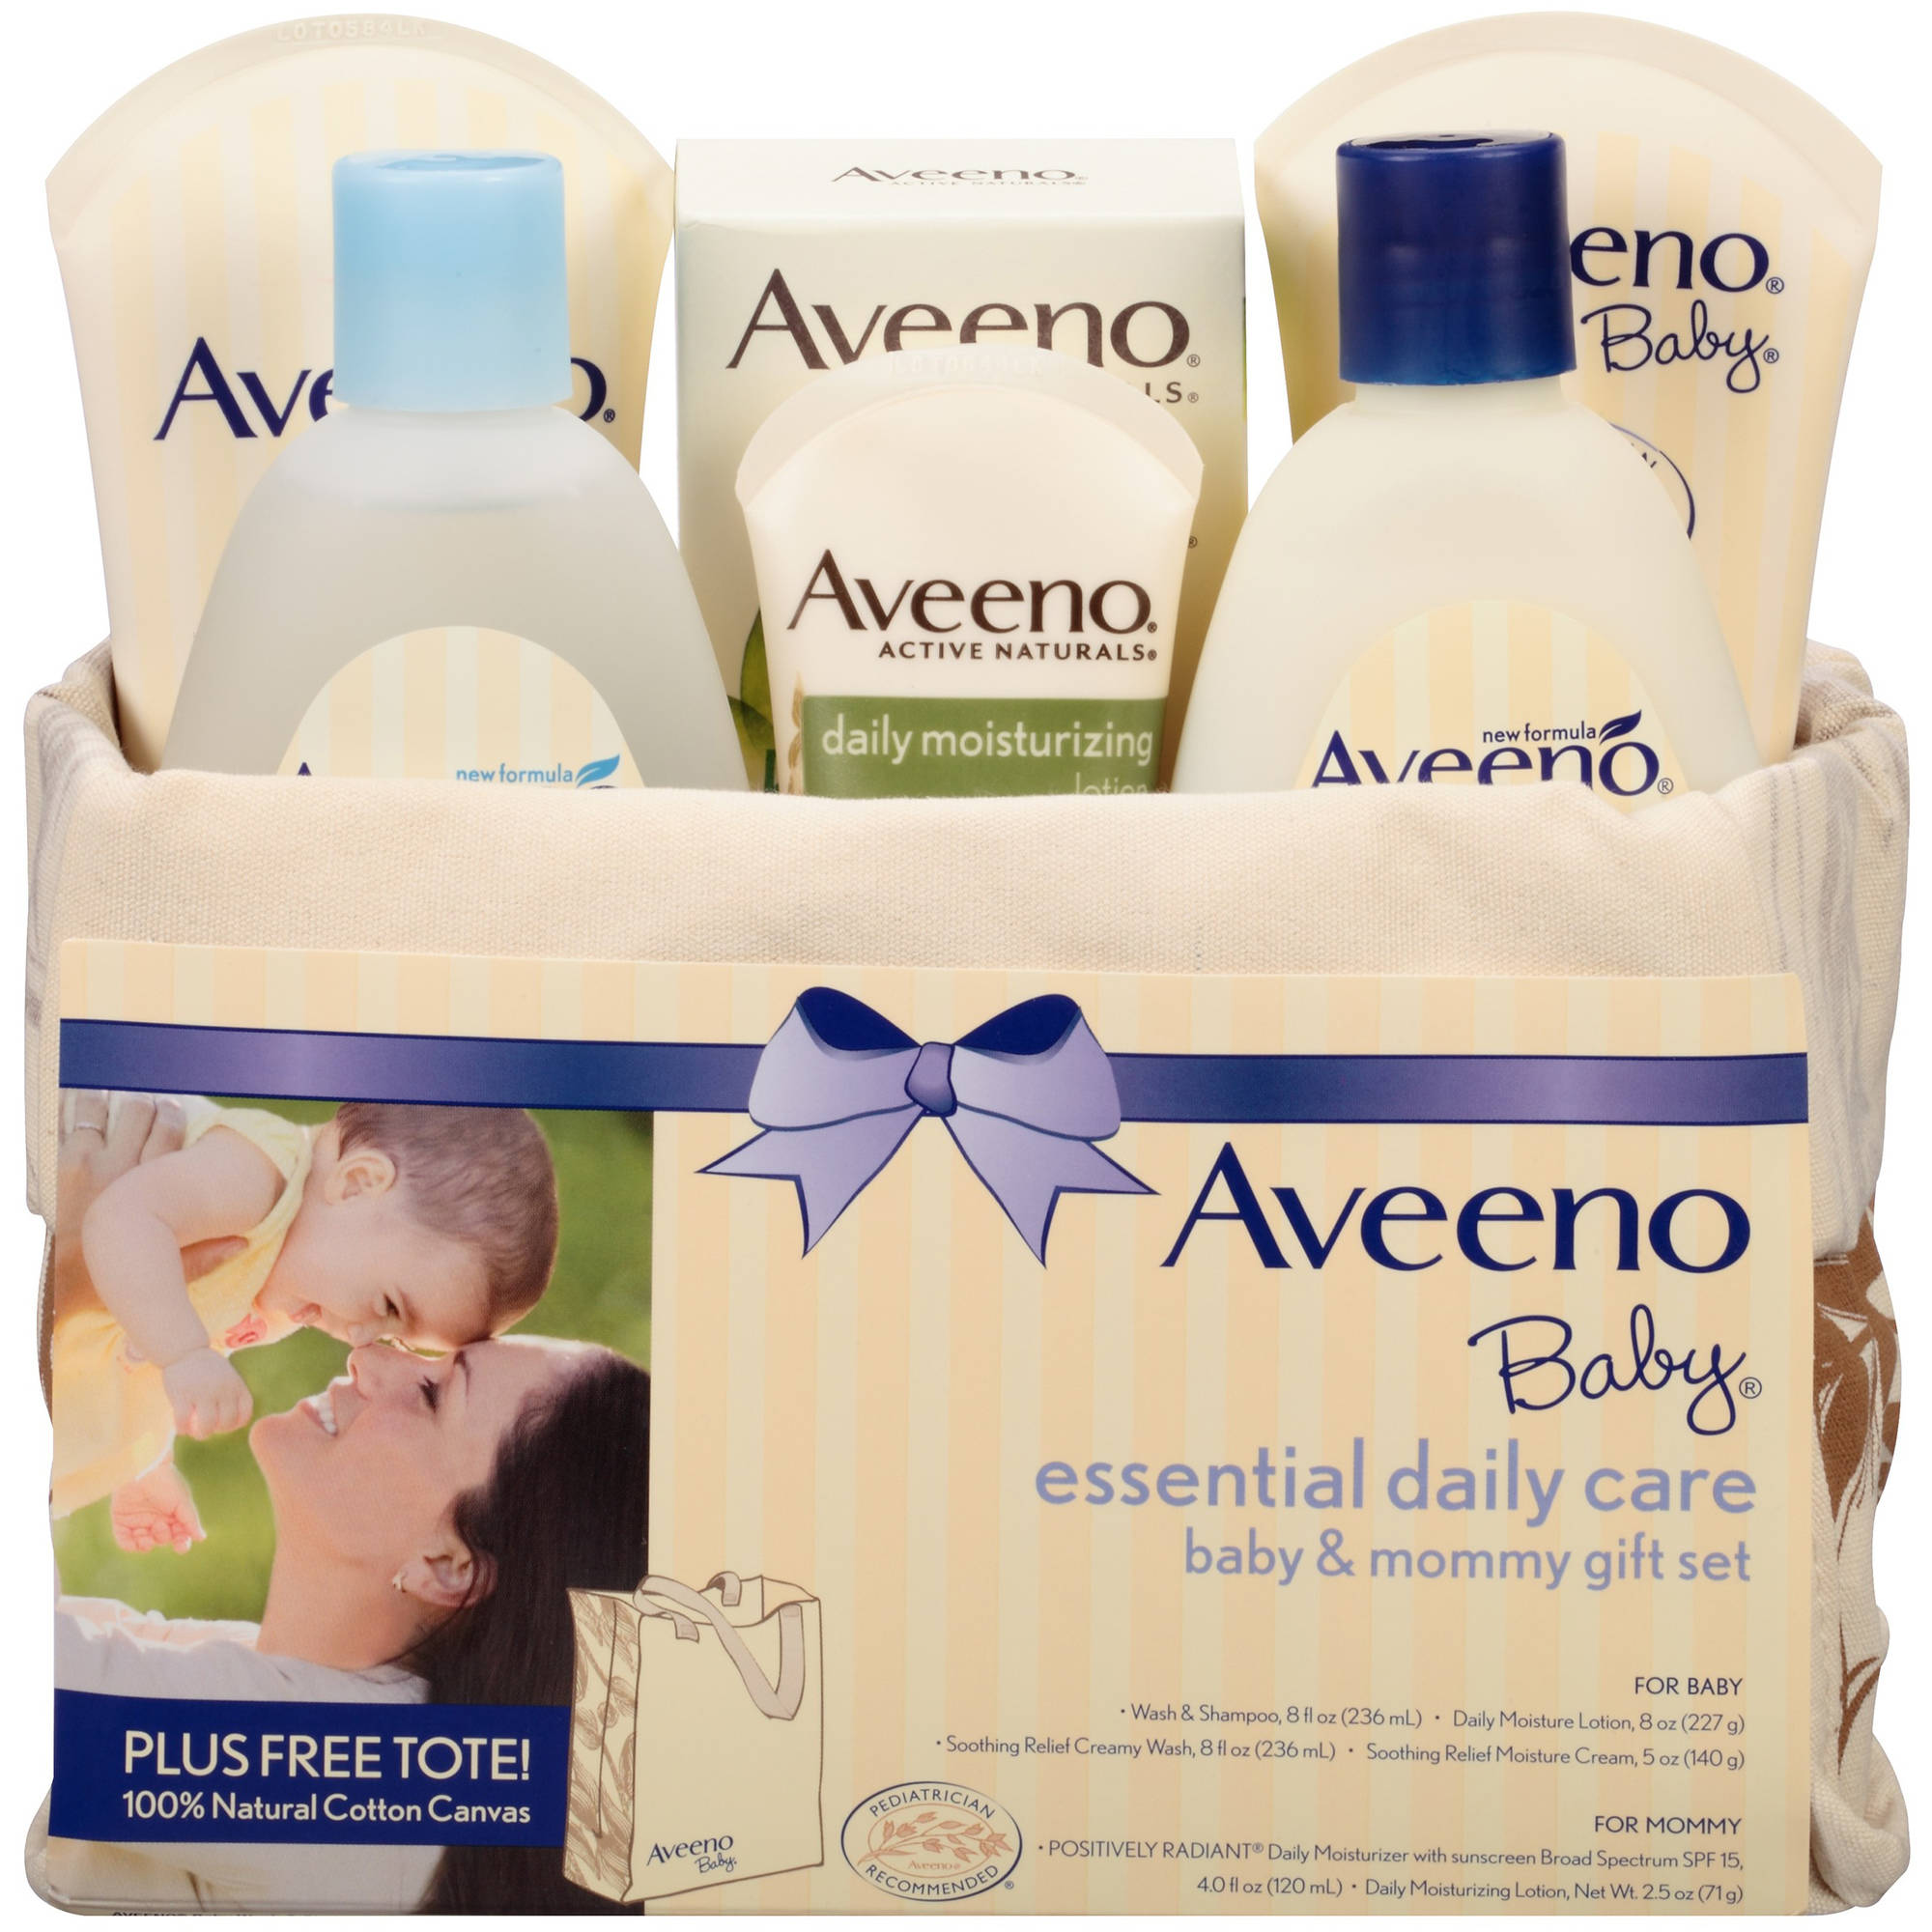 Aveeno Baby Essential Daily Care Baby & Mommy Gift Set, 7 pc